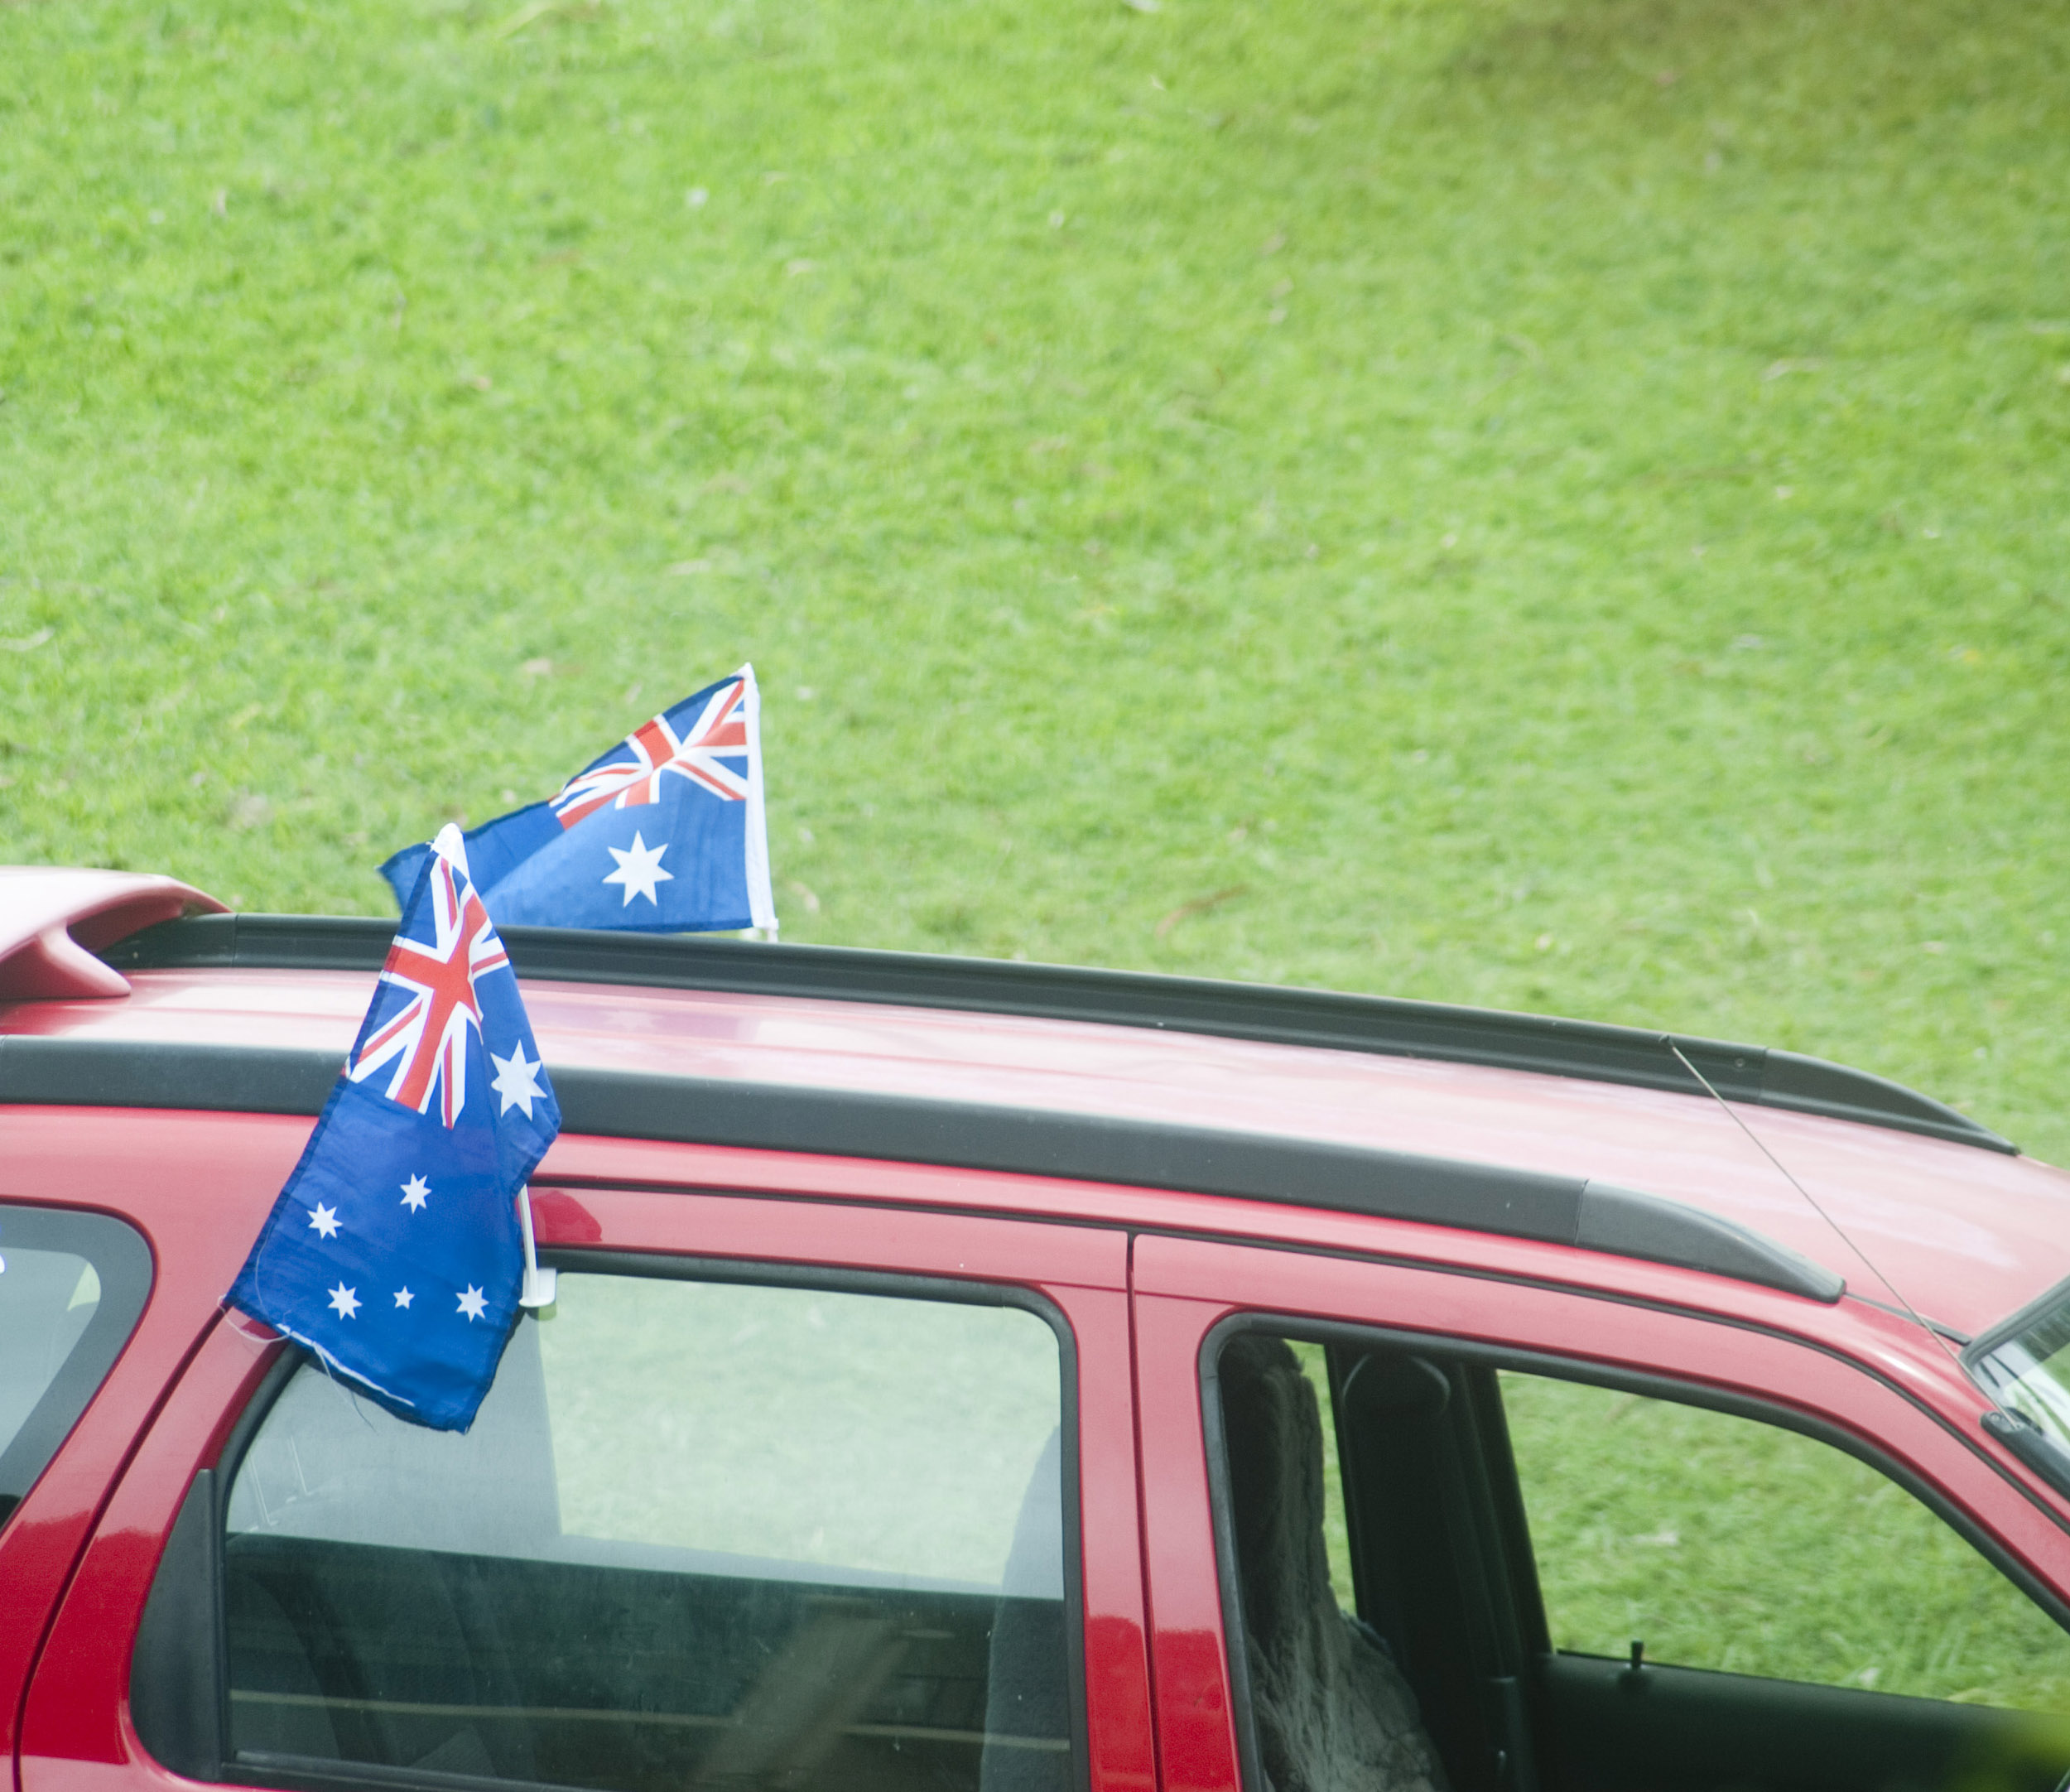 a car decorated with australian flags to celebrate australia day